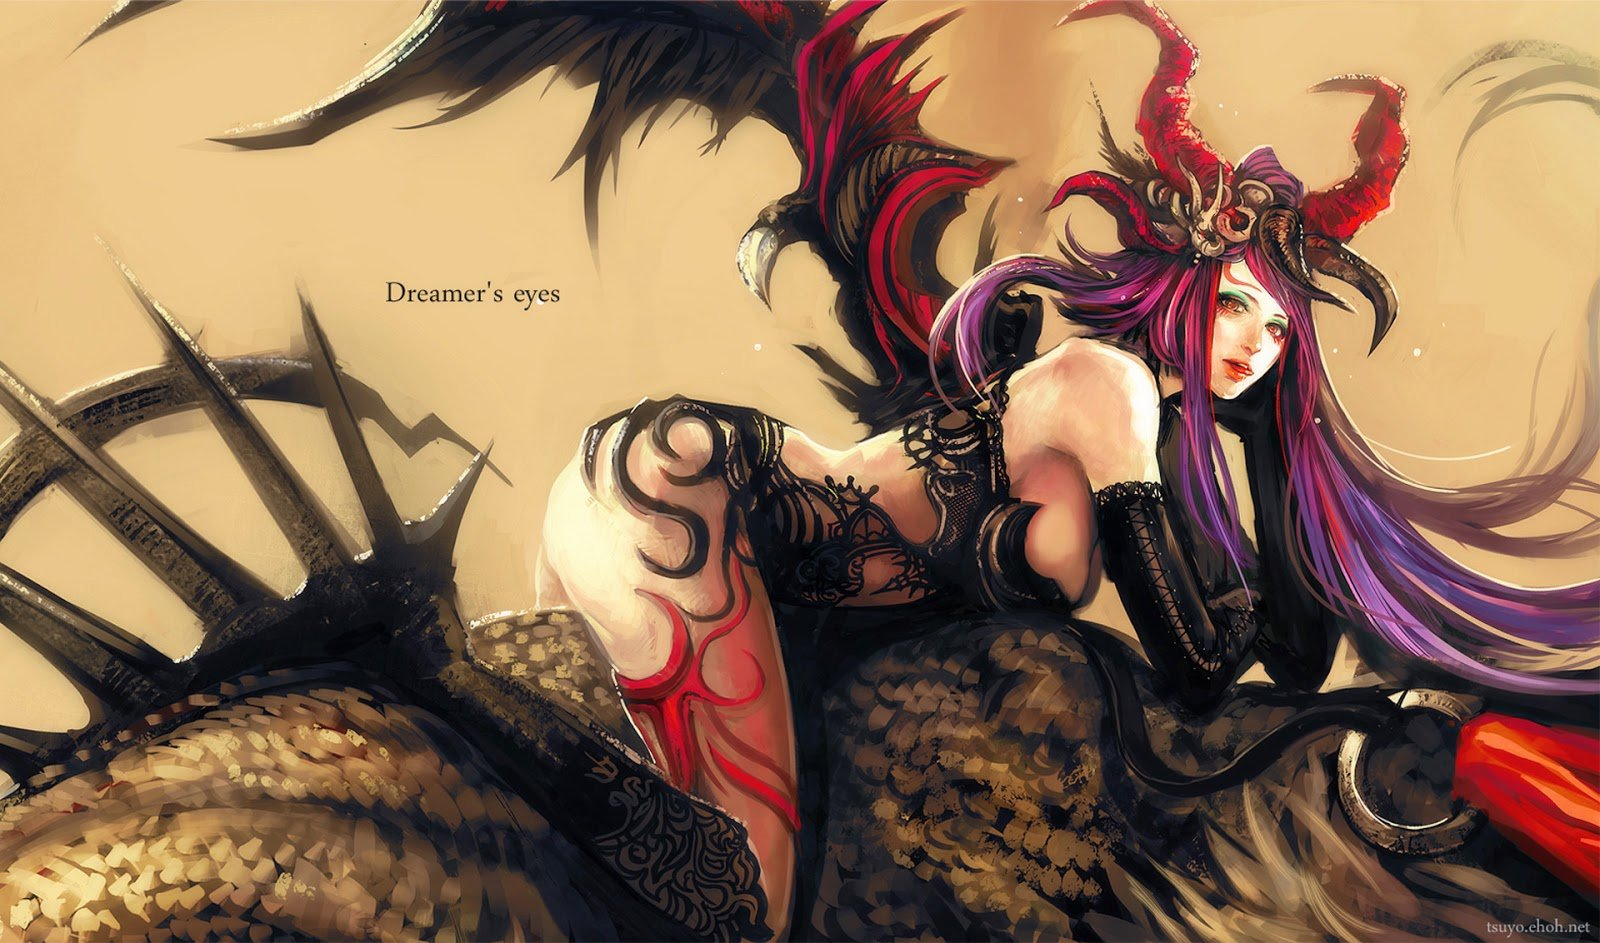 Sexy Demon Girl Wings Horn Anime HD Wallpaper Desktop PC Background 1600x943